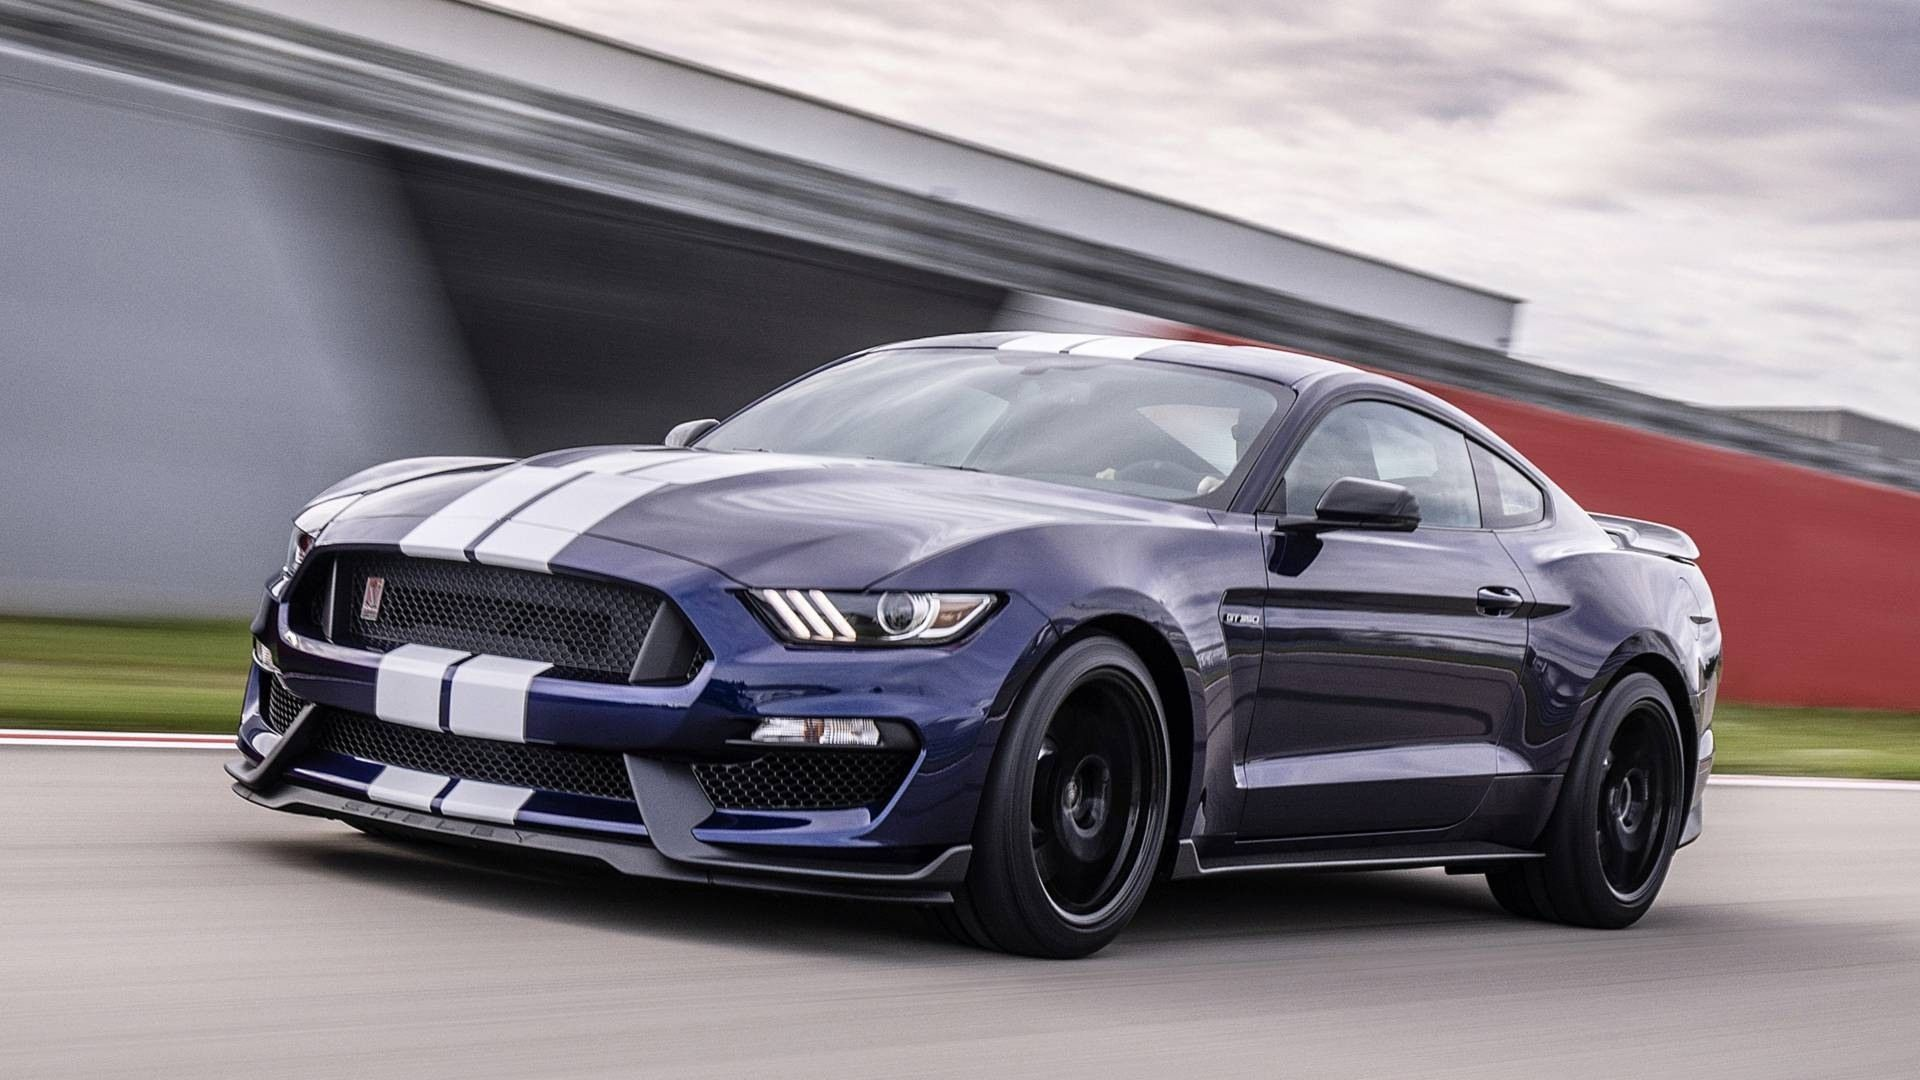 2019 Ford Shelby Gt350r Mustang Review And Specs Shelby Gt350r